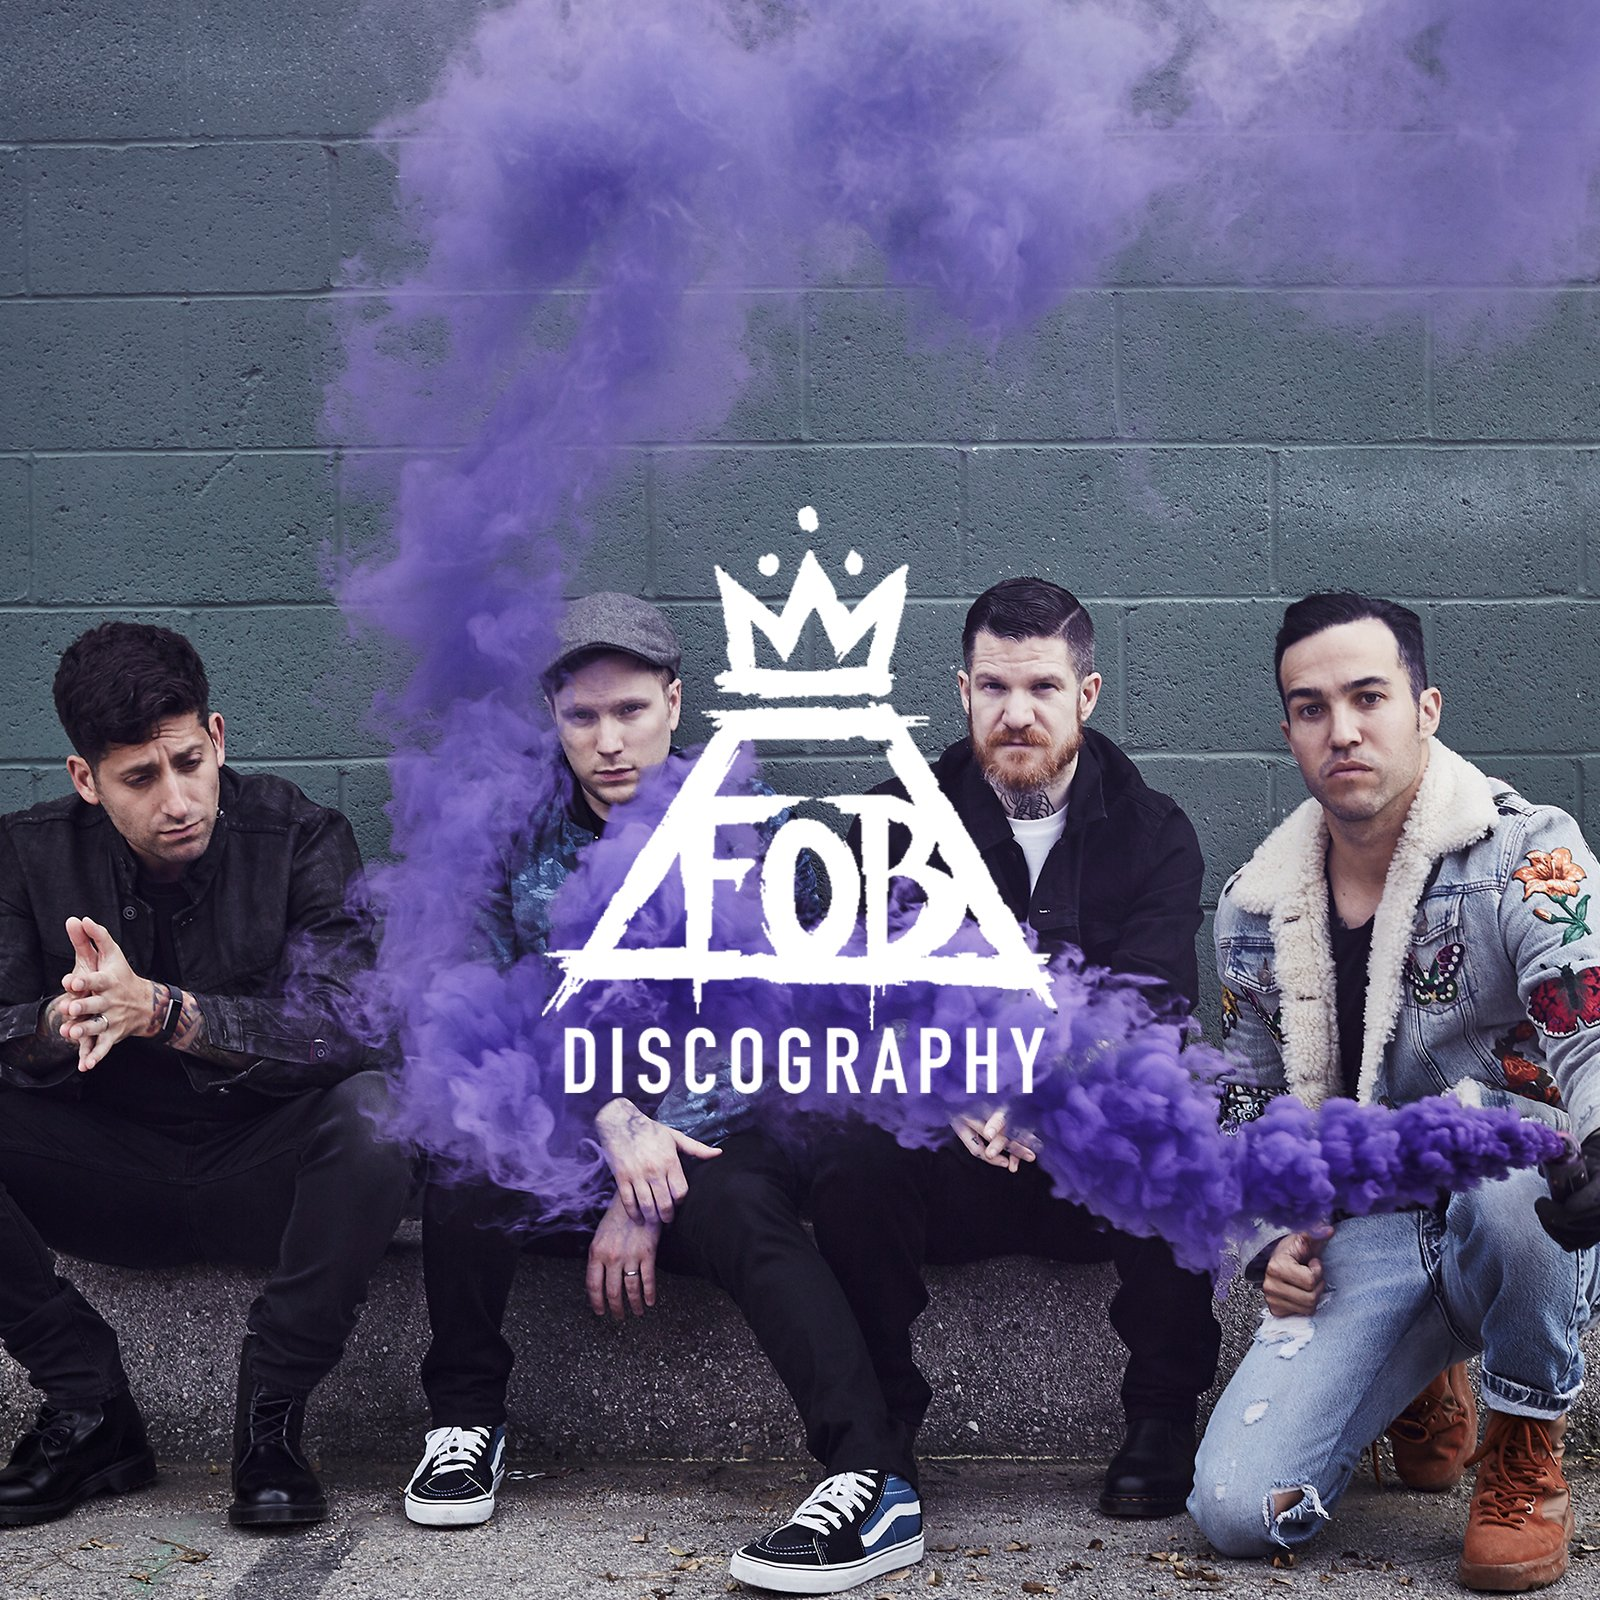 we've got all the FOB you can handle (and more) on @Spotify https://t.co/kXVUXFFMXw https://t.co/pvoEaxdxJF